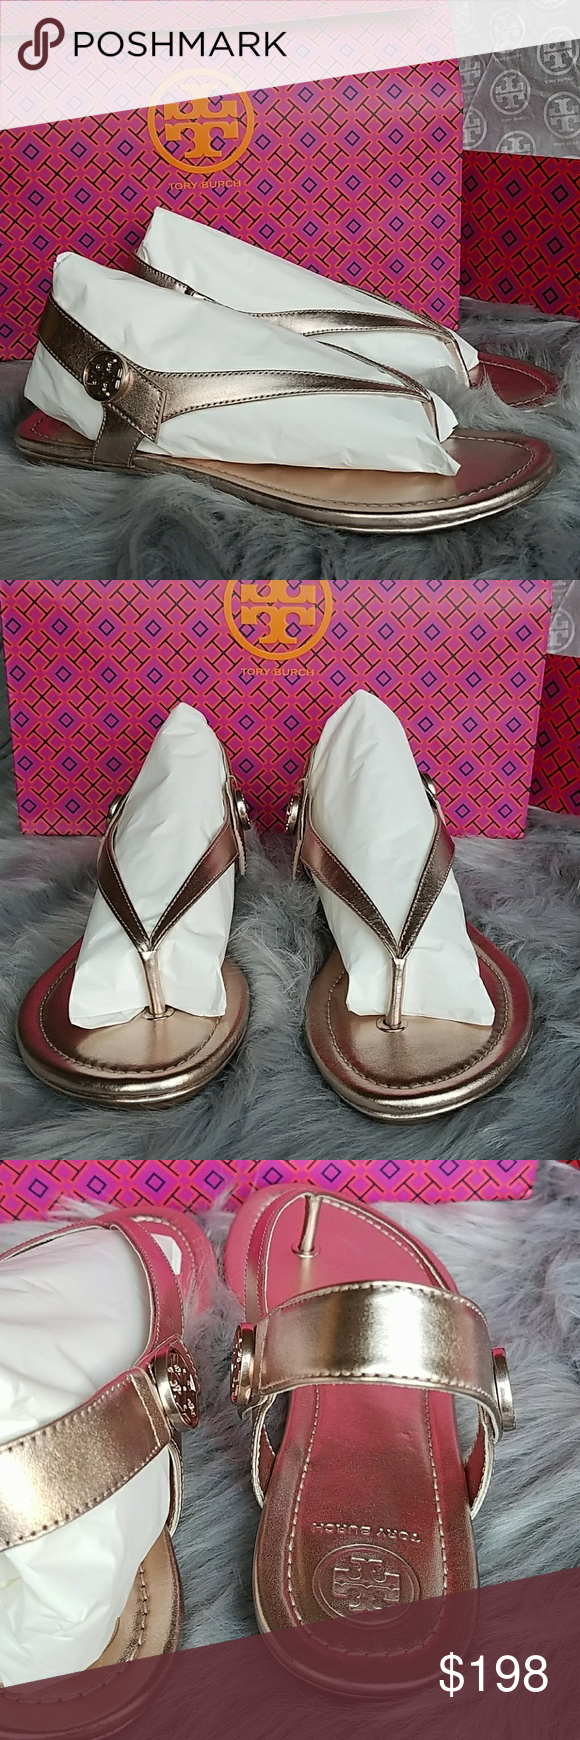 ddbd0437bcd1 Tory Burch Minnie Travel Sandal Rose Gold 7 Tory Burch Minnie Travel Sandal  metallic leather. Rose Gold color in size 7. New with box.